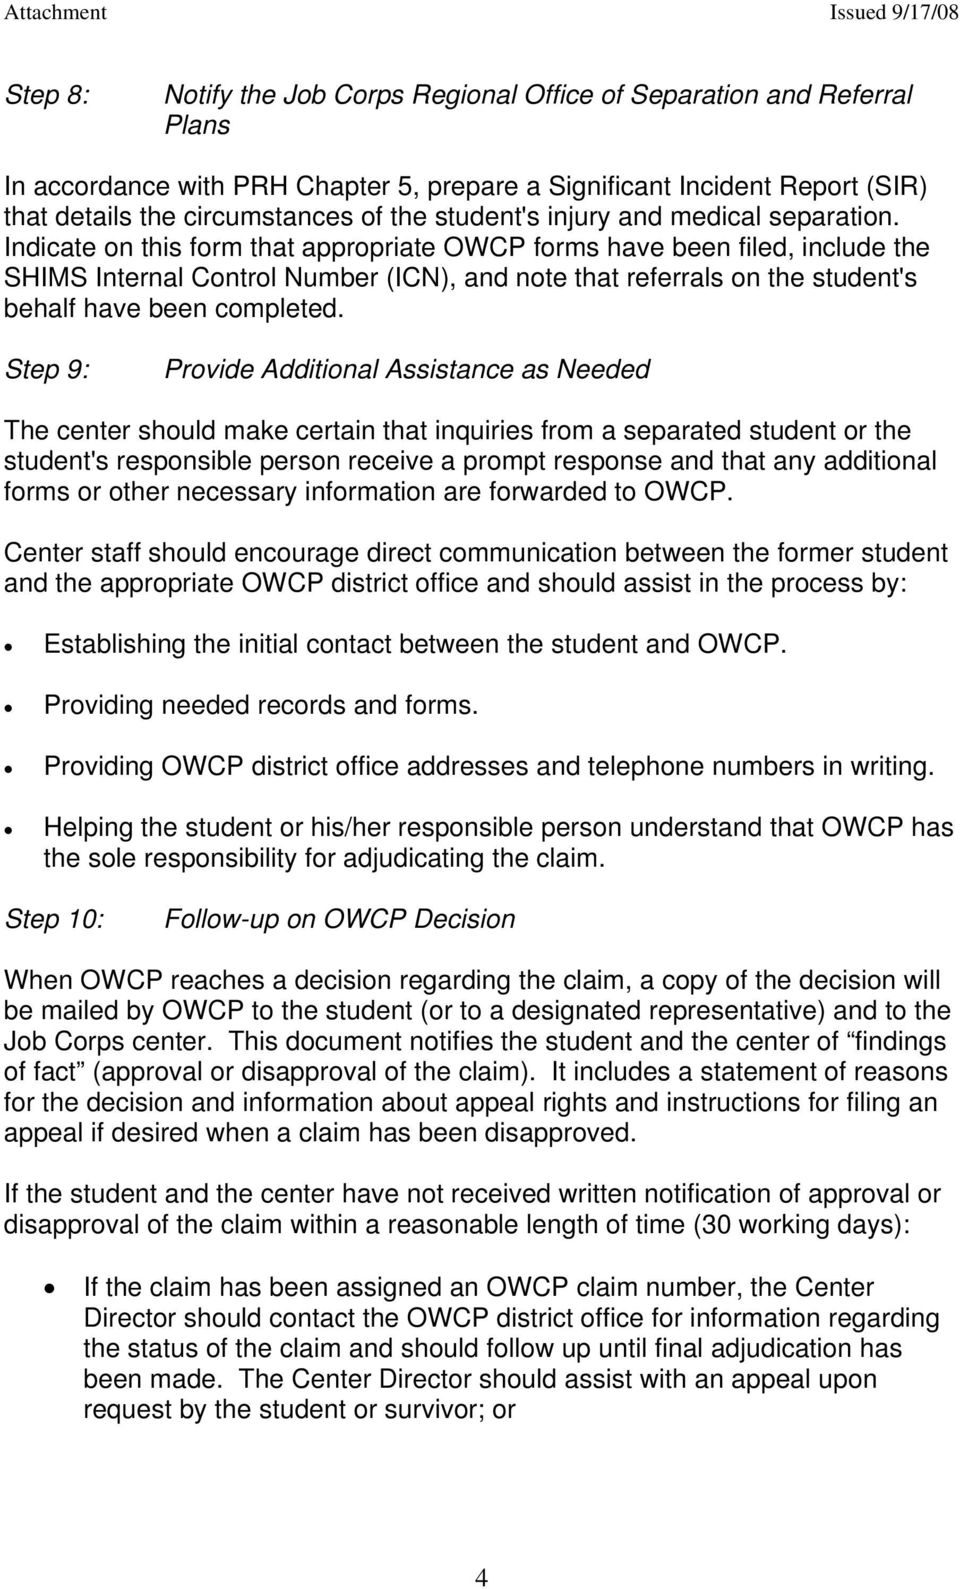 Indicate on this form that appropriate OWCP forms have been filed, include the SHIMS Internal Control Number (ICN), and note that referrals on the student's behalf have been completed.